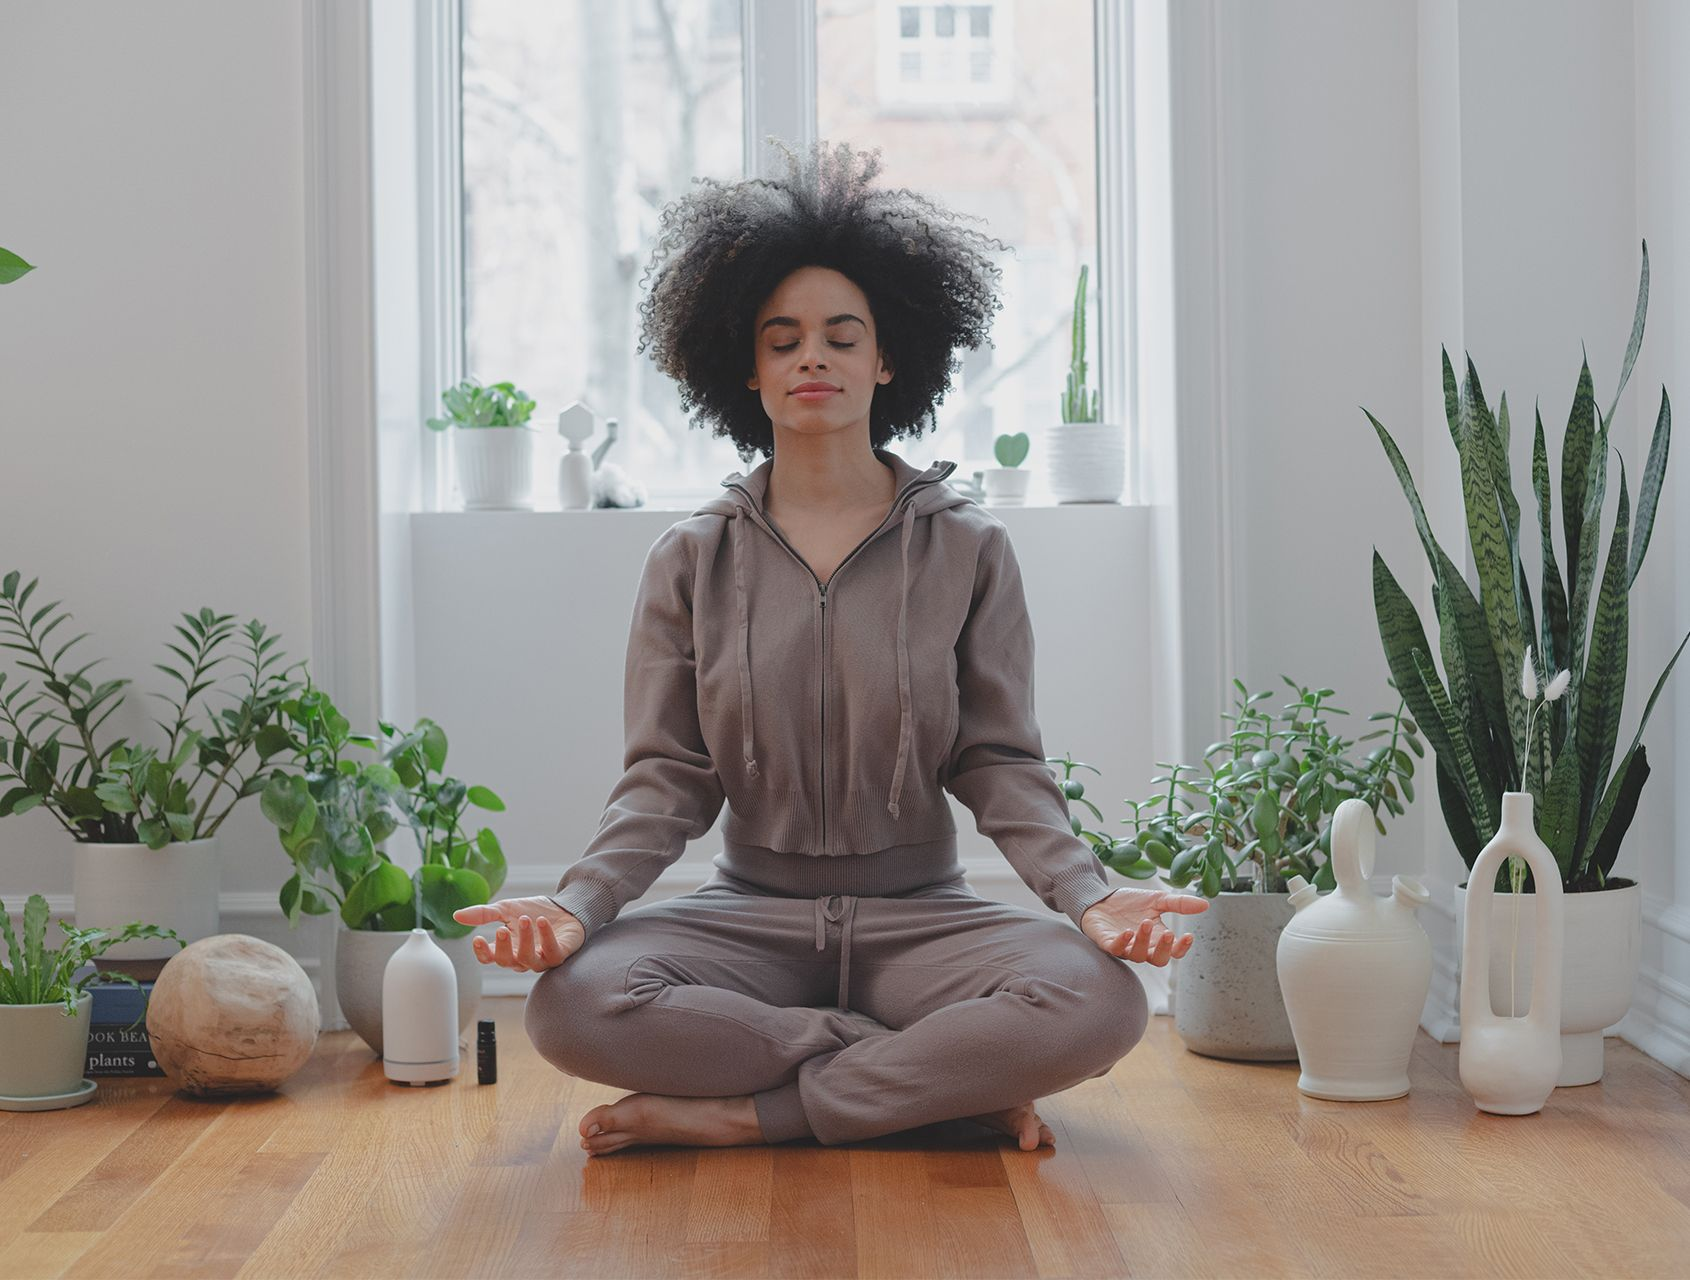 THE WELL 1:1 Mindful Movement or Meditation Session